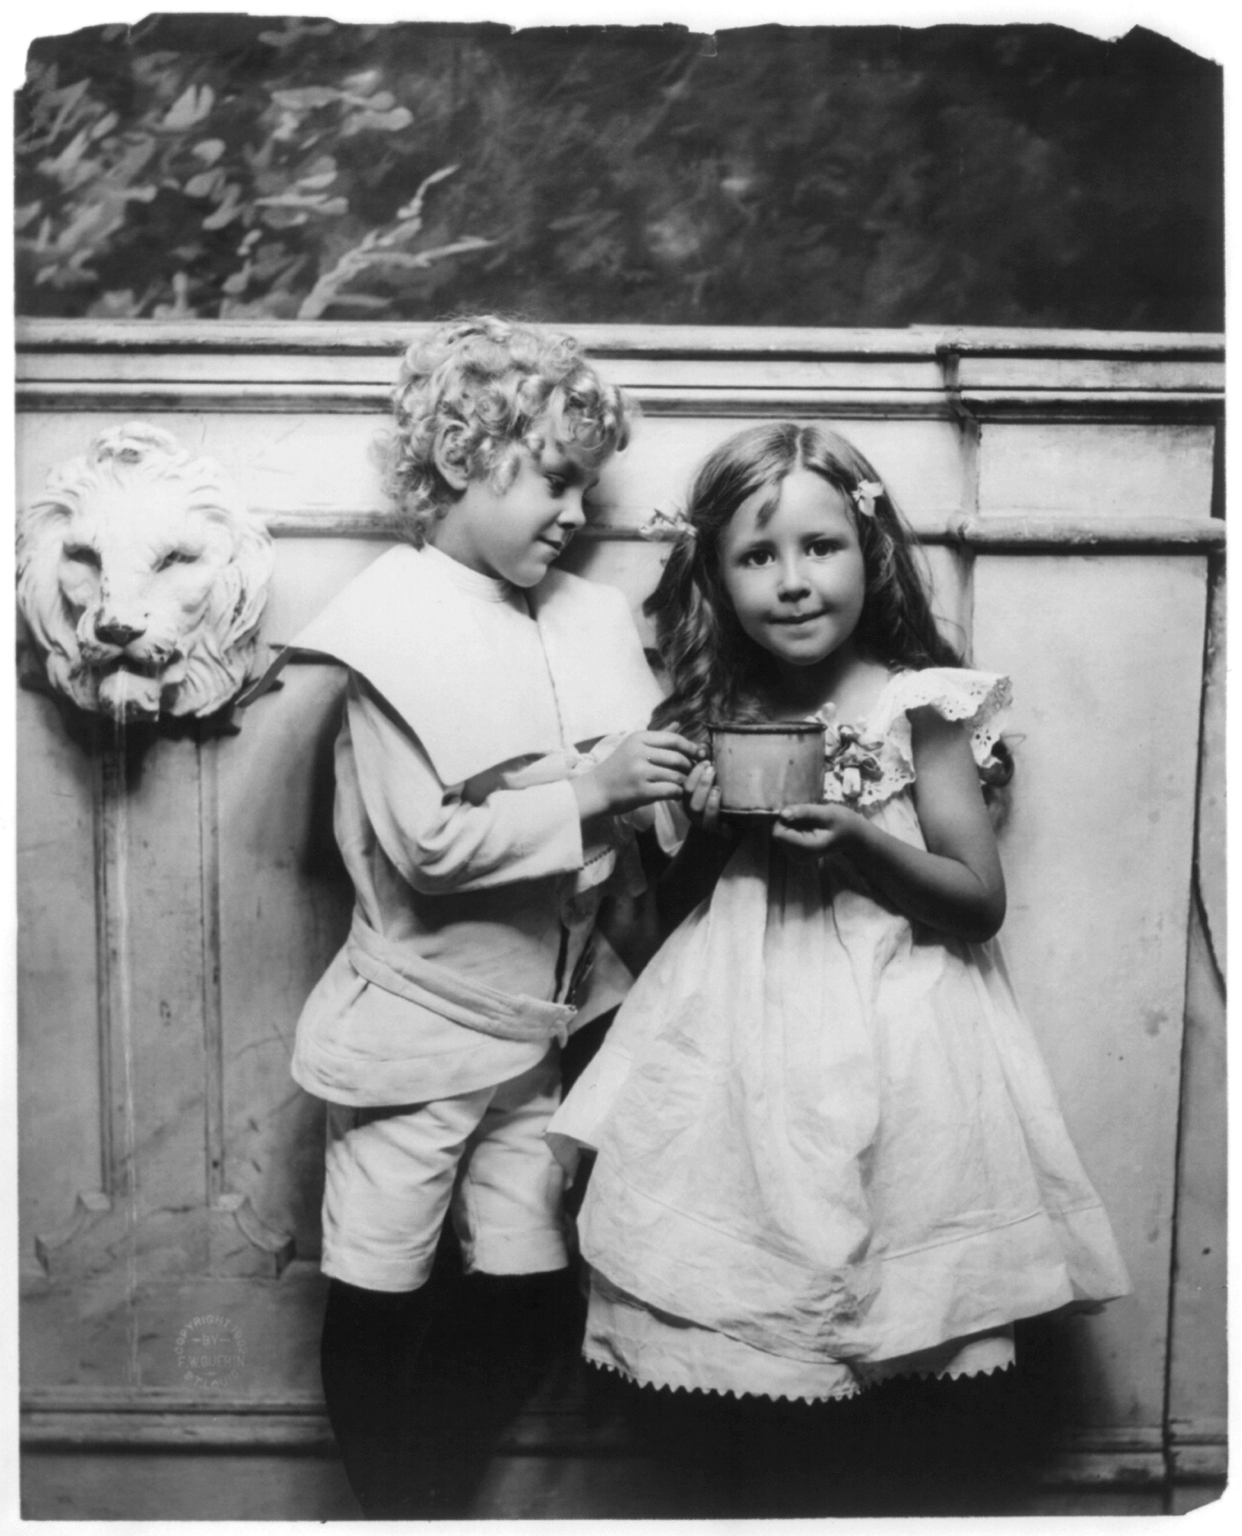 http://upload.wikimedia.org/wikipedia/commons/8/8a/Boy_and_girl_posed,_standing,_holding_large_cup.png